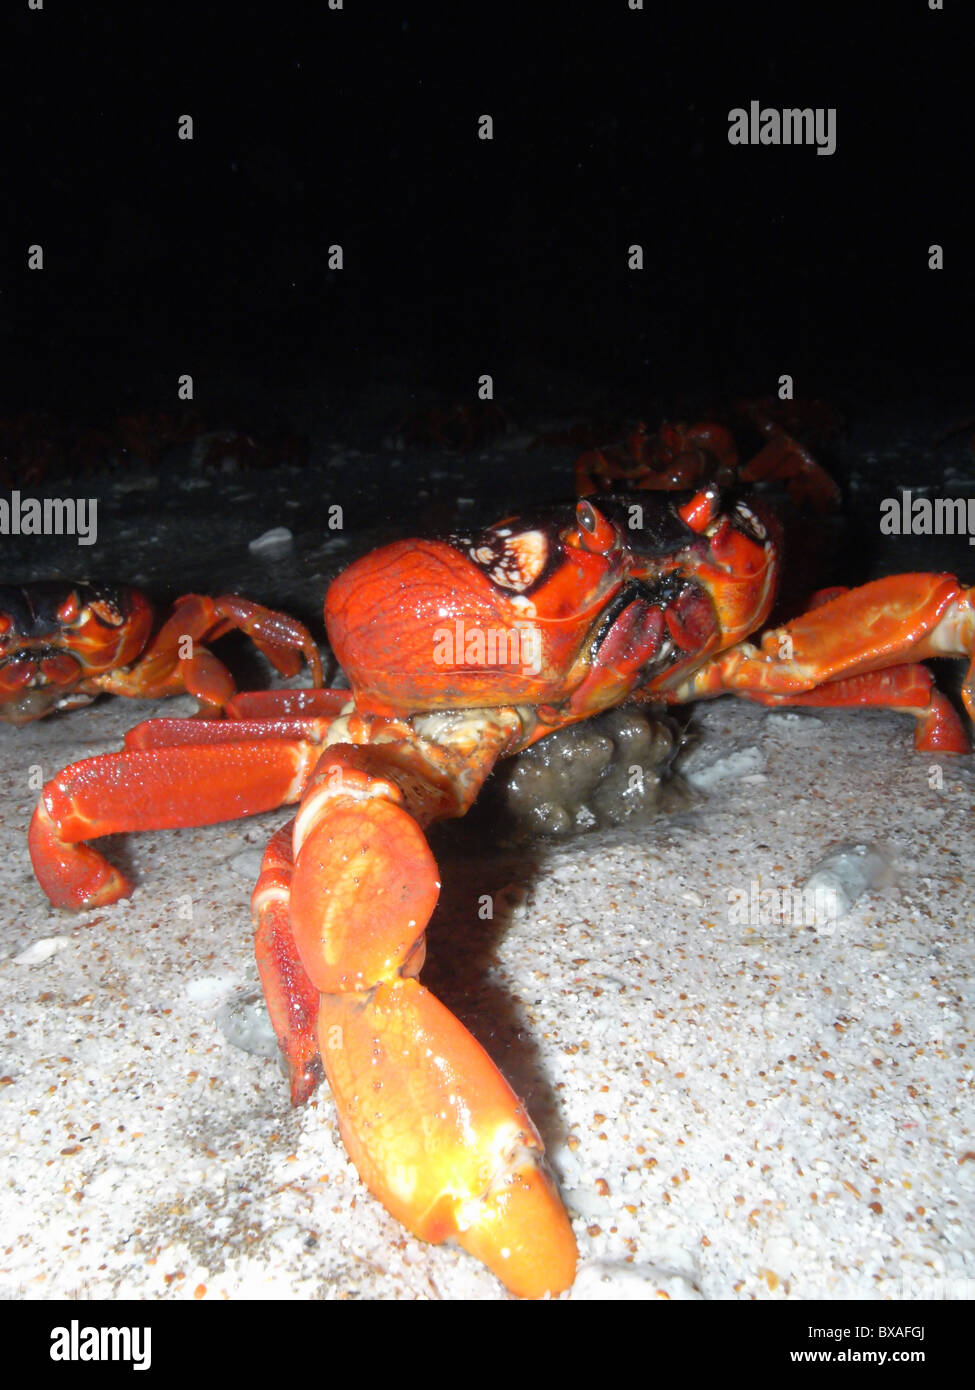 Red crabs (Gecarcoidea natalis) spawning at around 4am at ocean's edge, 1 December 2010, Christmas Island, Indian - Stock Image